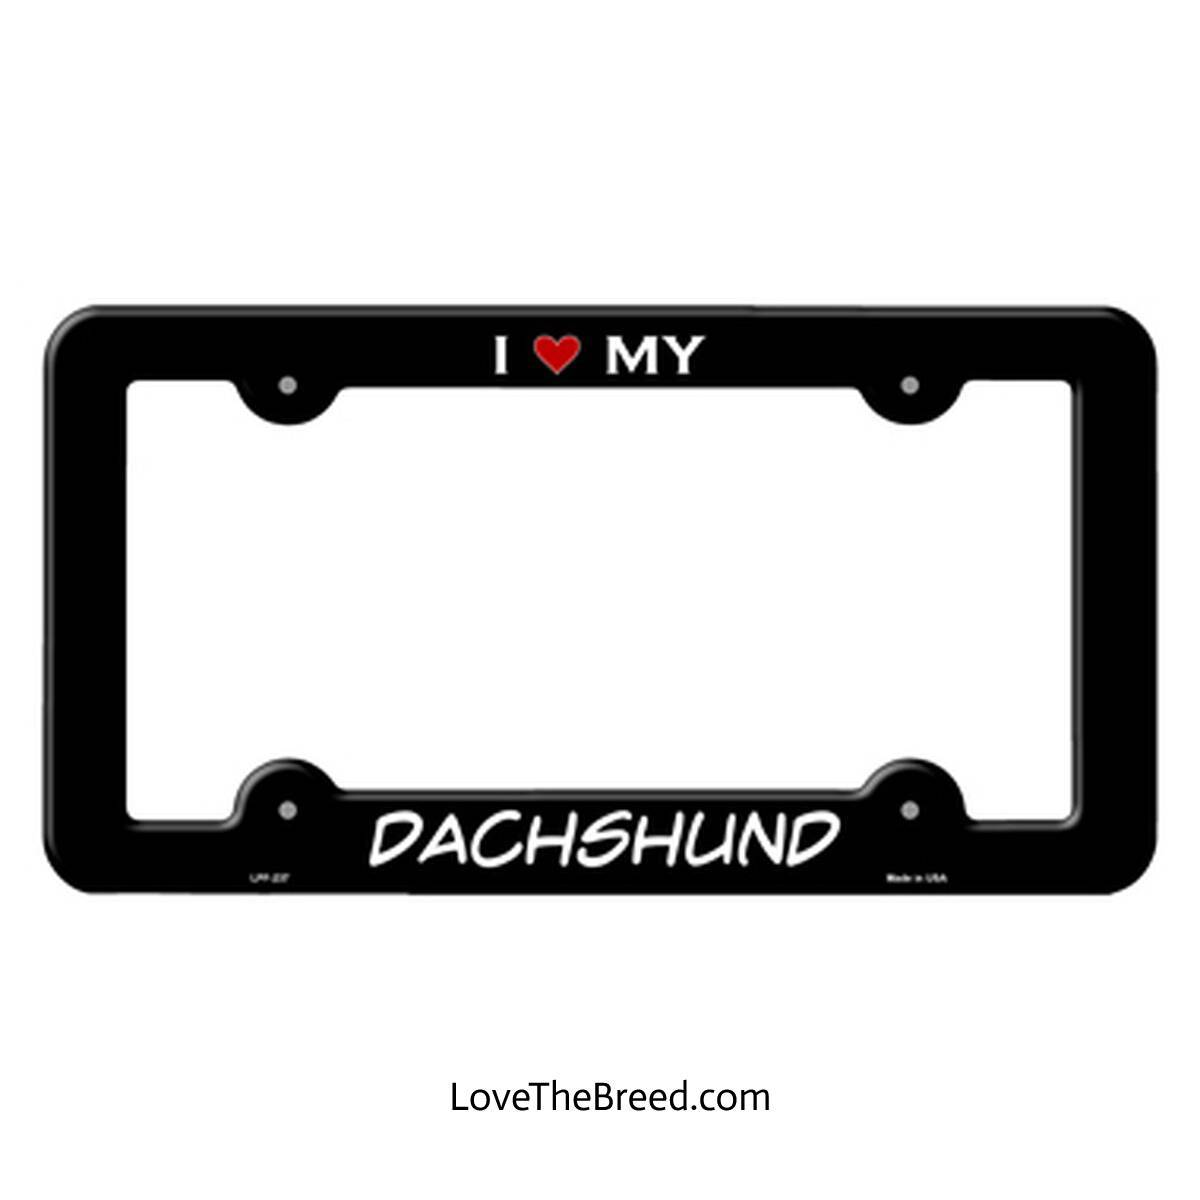 I Love My Dachshund Novelty Metal License Plate Frame